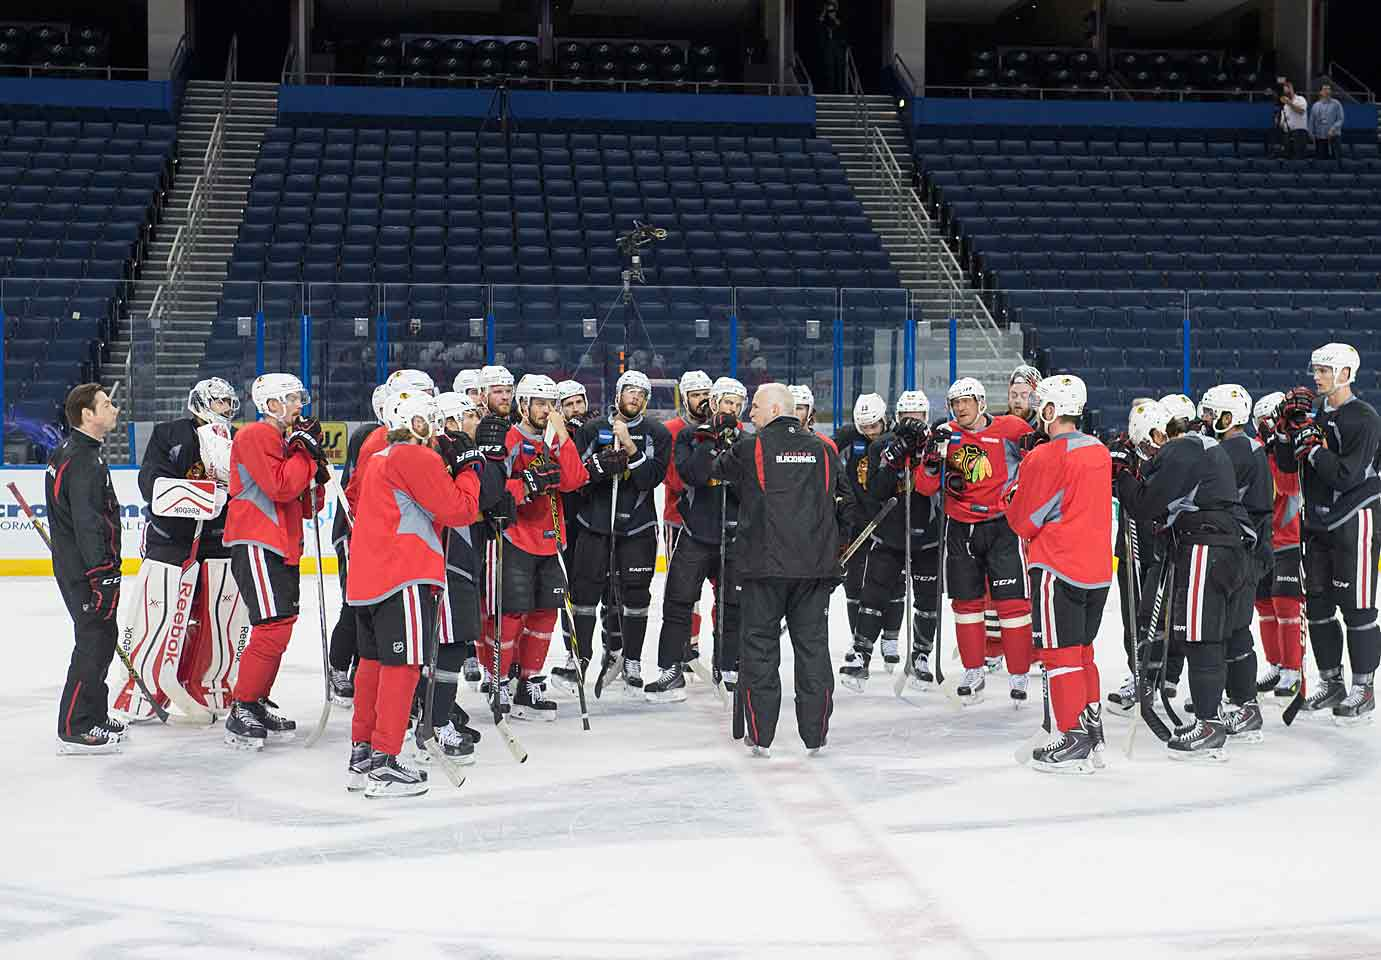 After losing an epic seven-game Western Conference Finals against the Kings, coach Joel Quenneville's Blackhawks arrive in camp with their core—Patrick Kane, Jonathan Toews, Patrick Sharp, Marian Hossa, Brent Seabrook, Duncan Keith—intact plus new additions such as veteran free agent Brad Richards and highly-touted prospect Teuvo Teravainen. With the West and Central Division stacked with tough teams, winning their third Stanley Cup since 2010 looks like a stiff challenge.